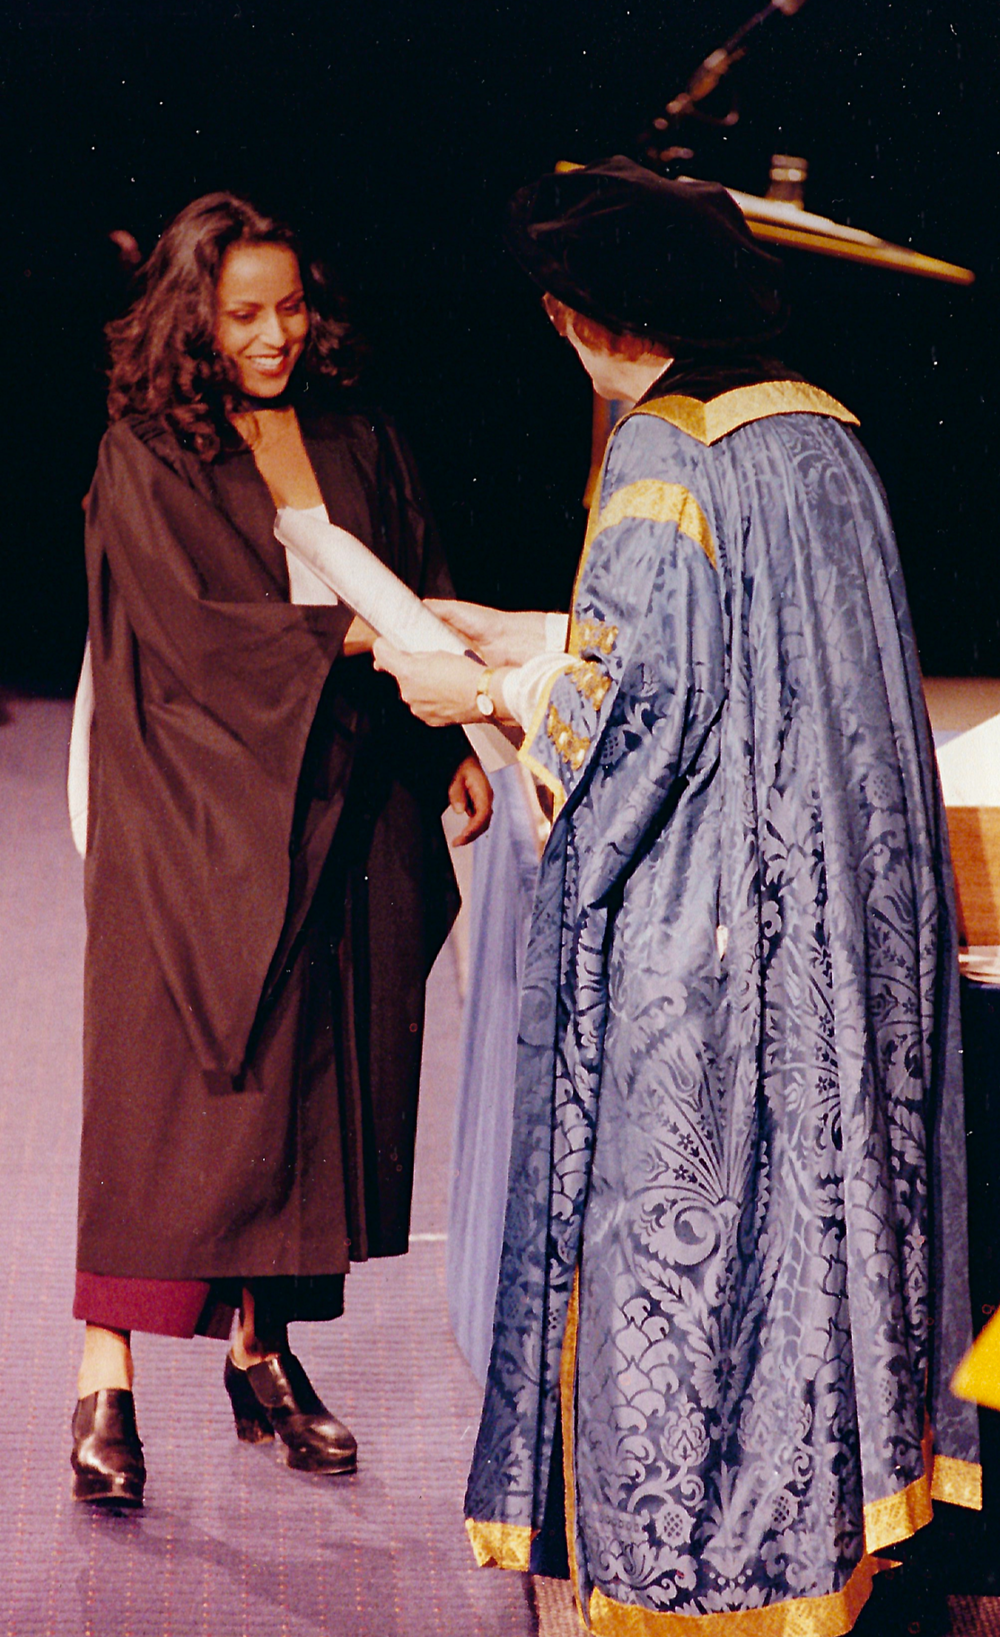 Graduating from Flinders University, South Australia, in 1995.